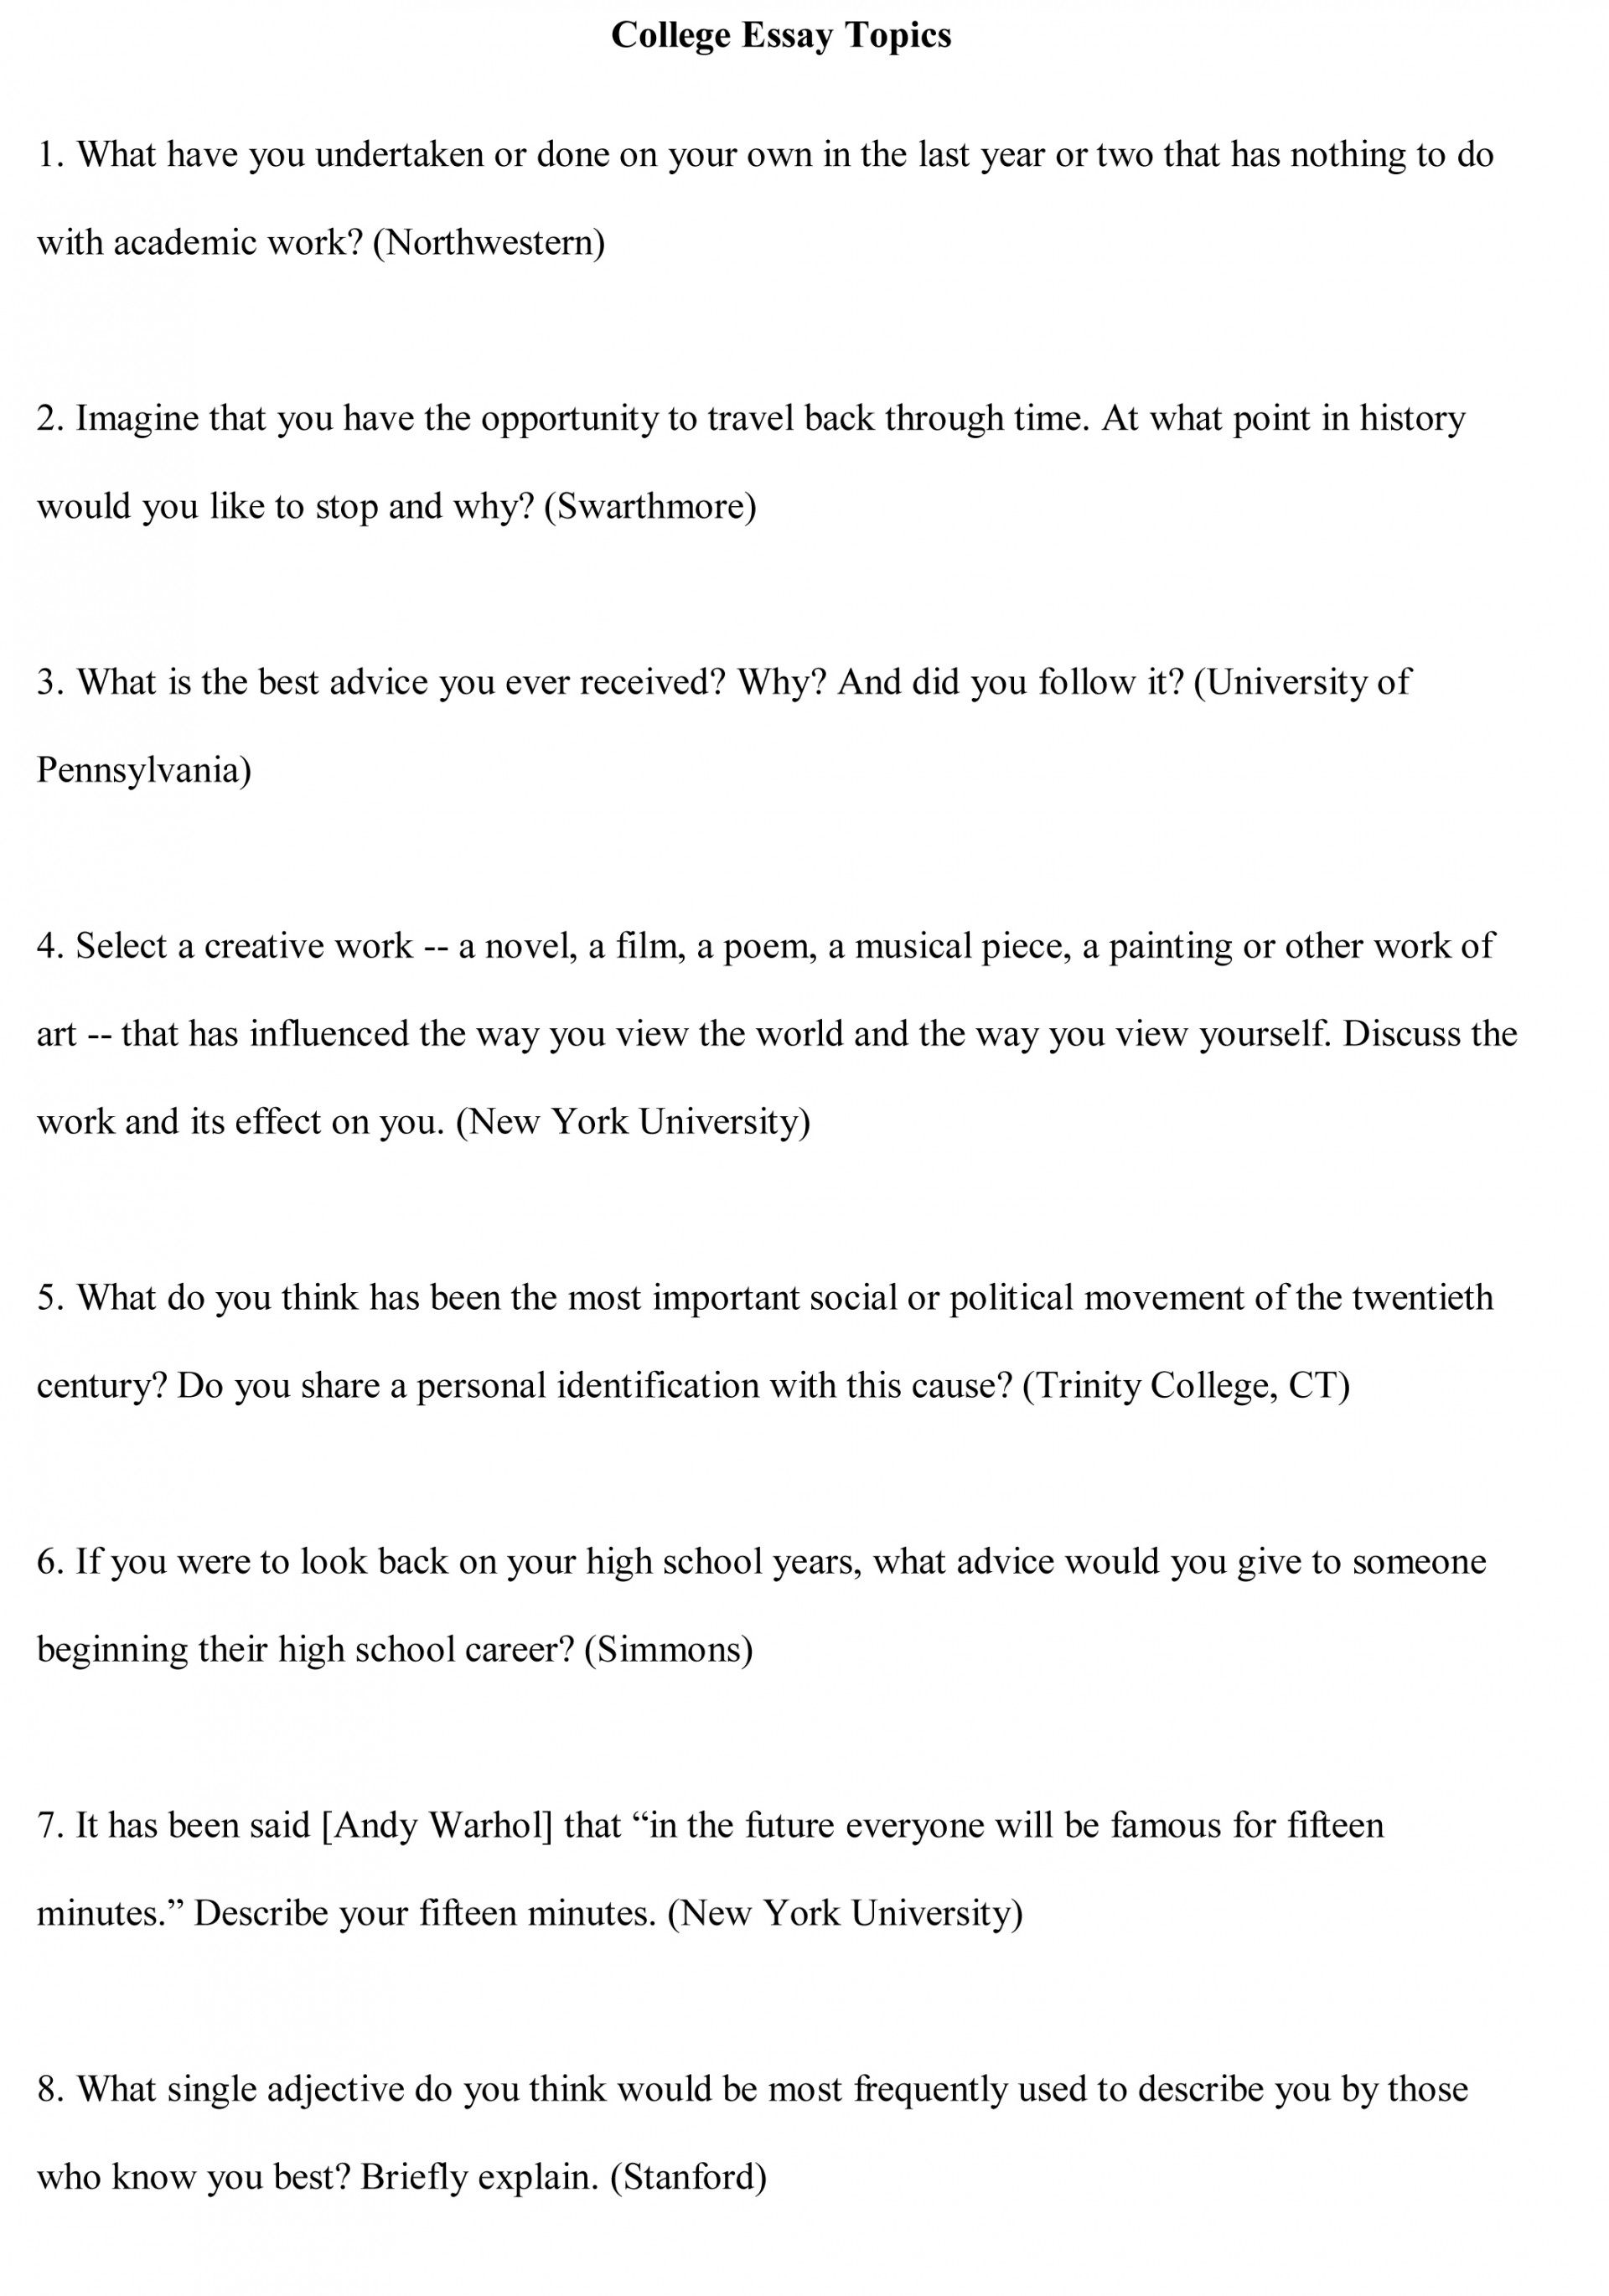 003 College Essay Topics Free Sample1 Prompts Impressive And Examples Application Uc 2017 1920